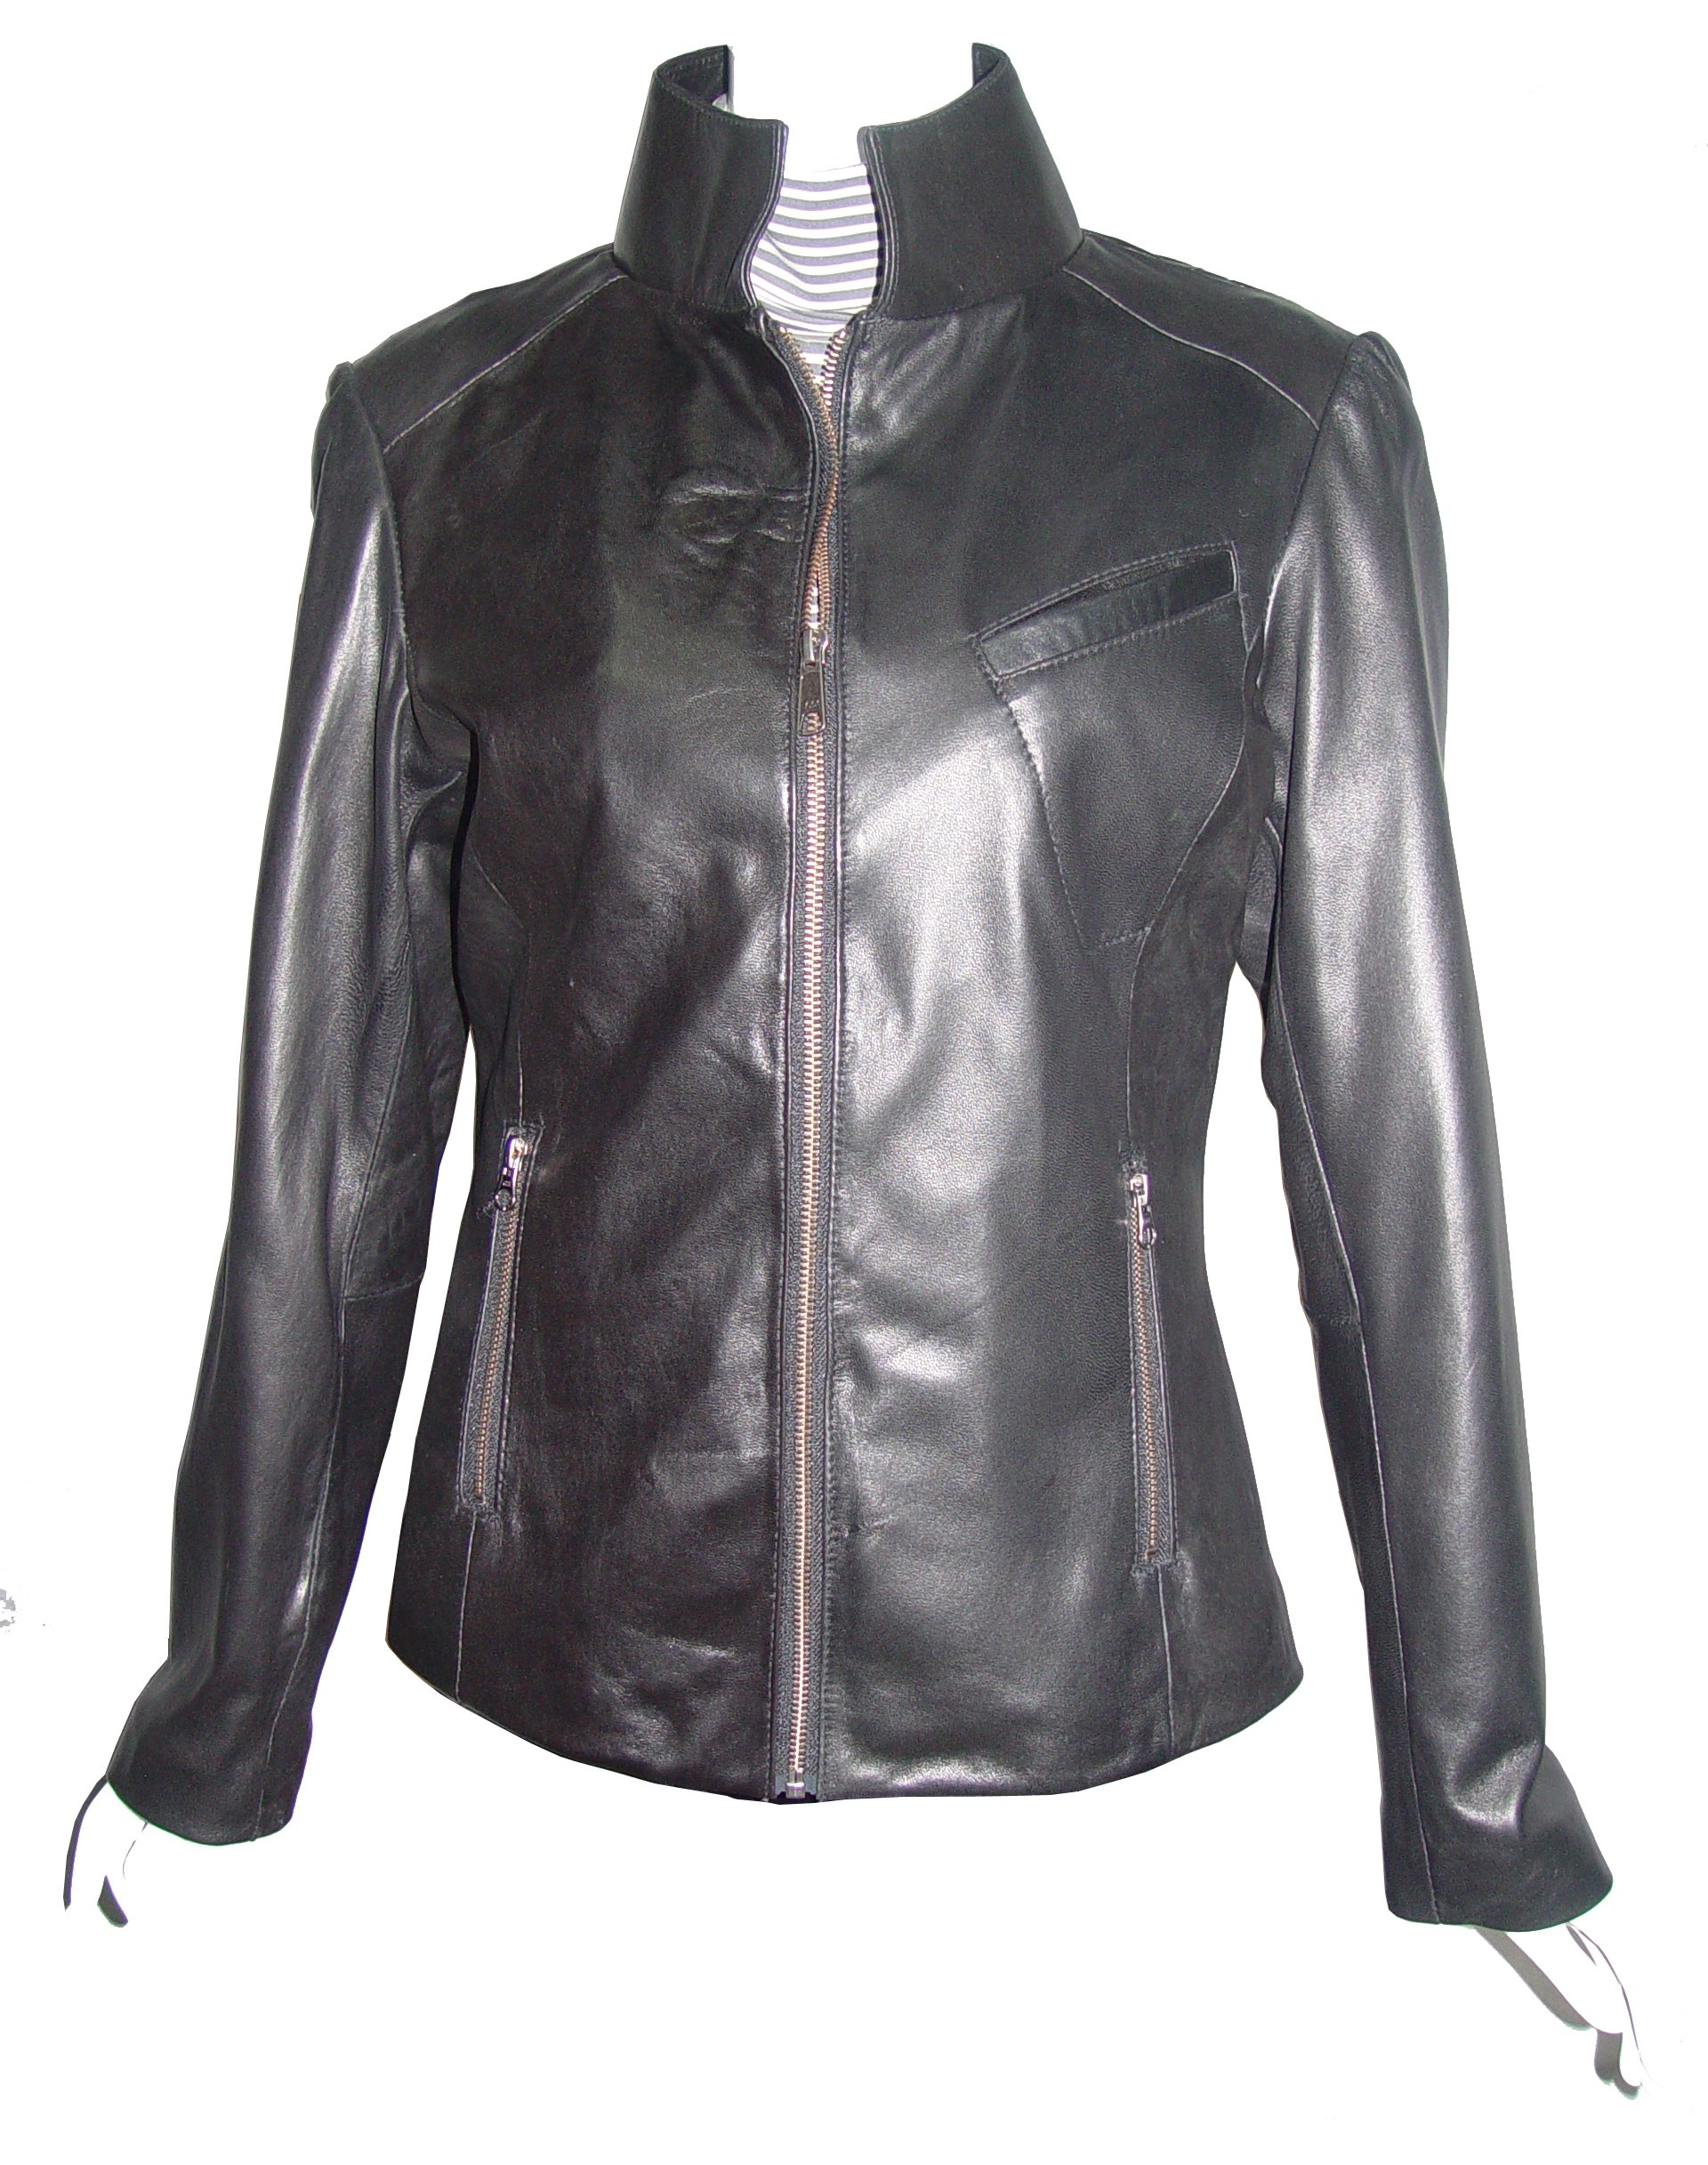 Nettailor Big Women Tall PLUS & ALL SIZE 4193 Lamb Leather Motorcycle Casual Jacket